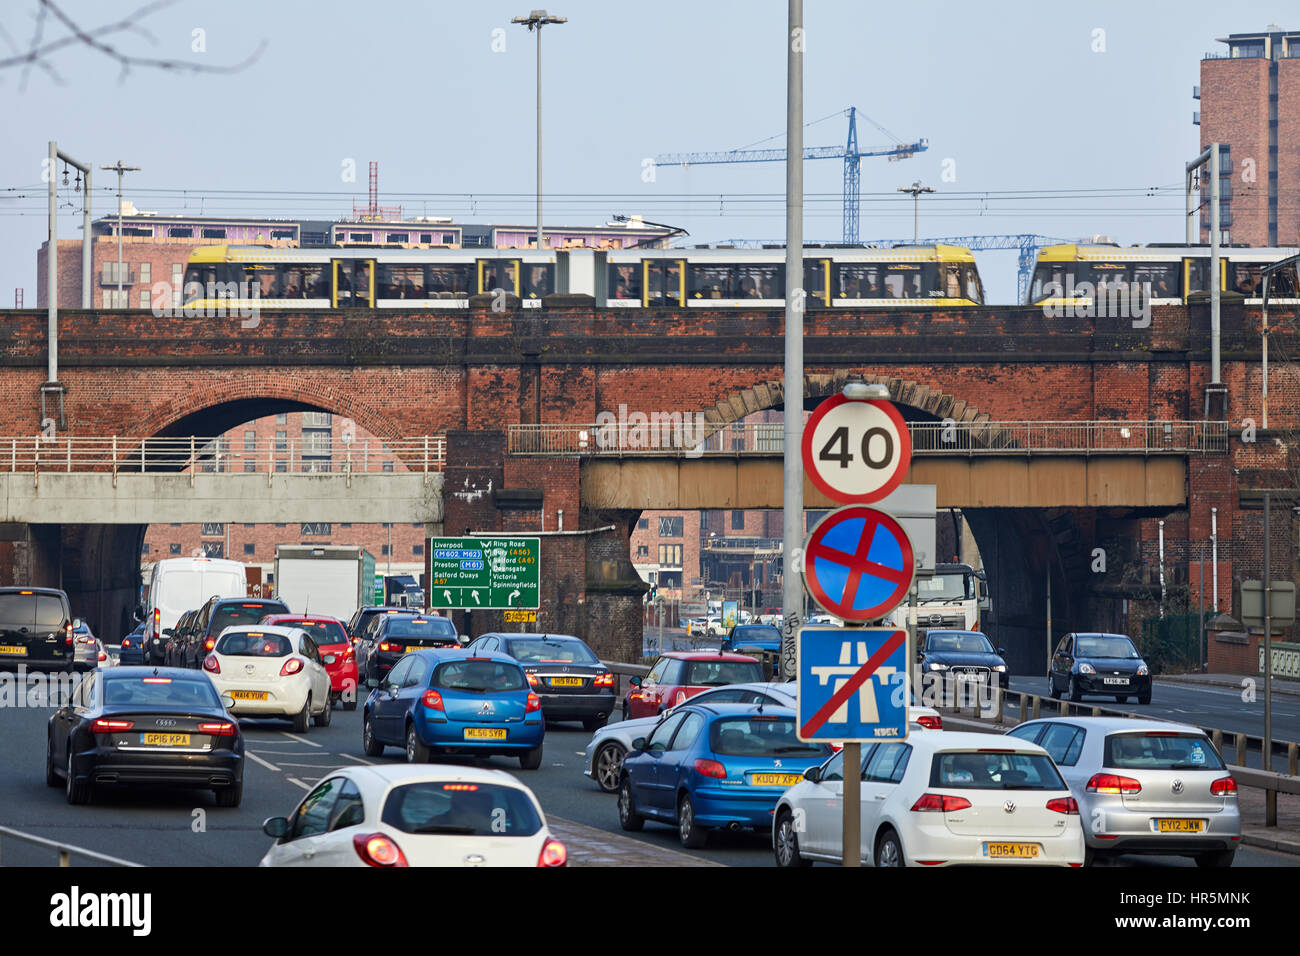 A yellow  Metrolink tram crossing a viaduct at  The Mancunian Way at  Castlefield Salford boundary Manchester England,UK - Stock Image